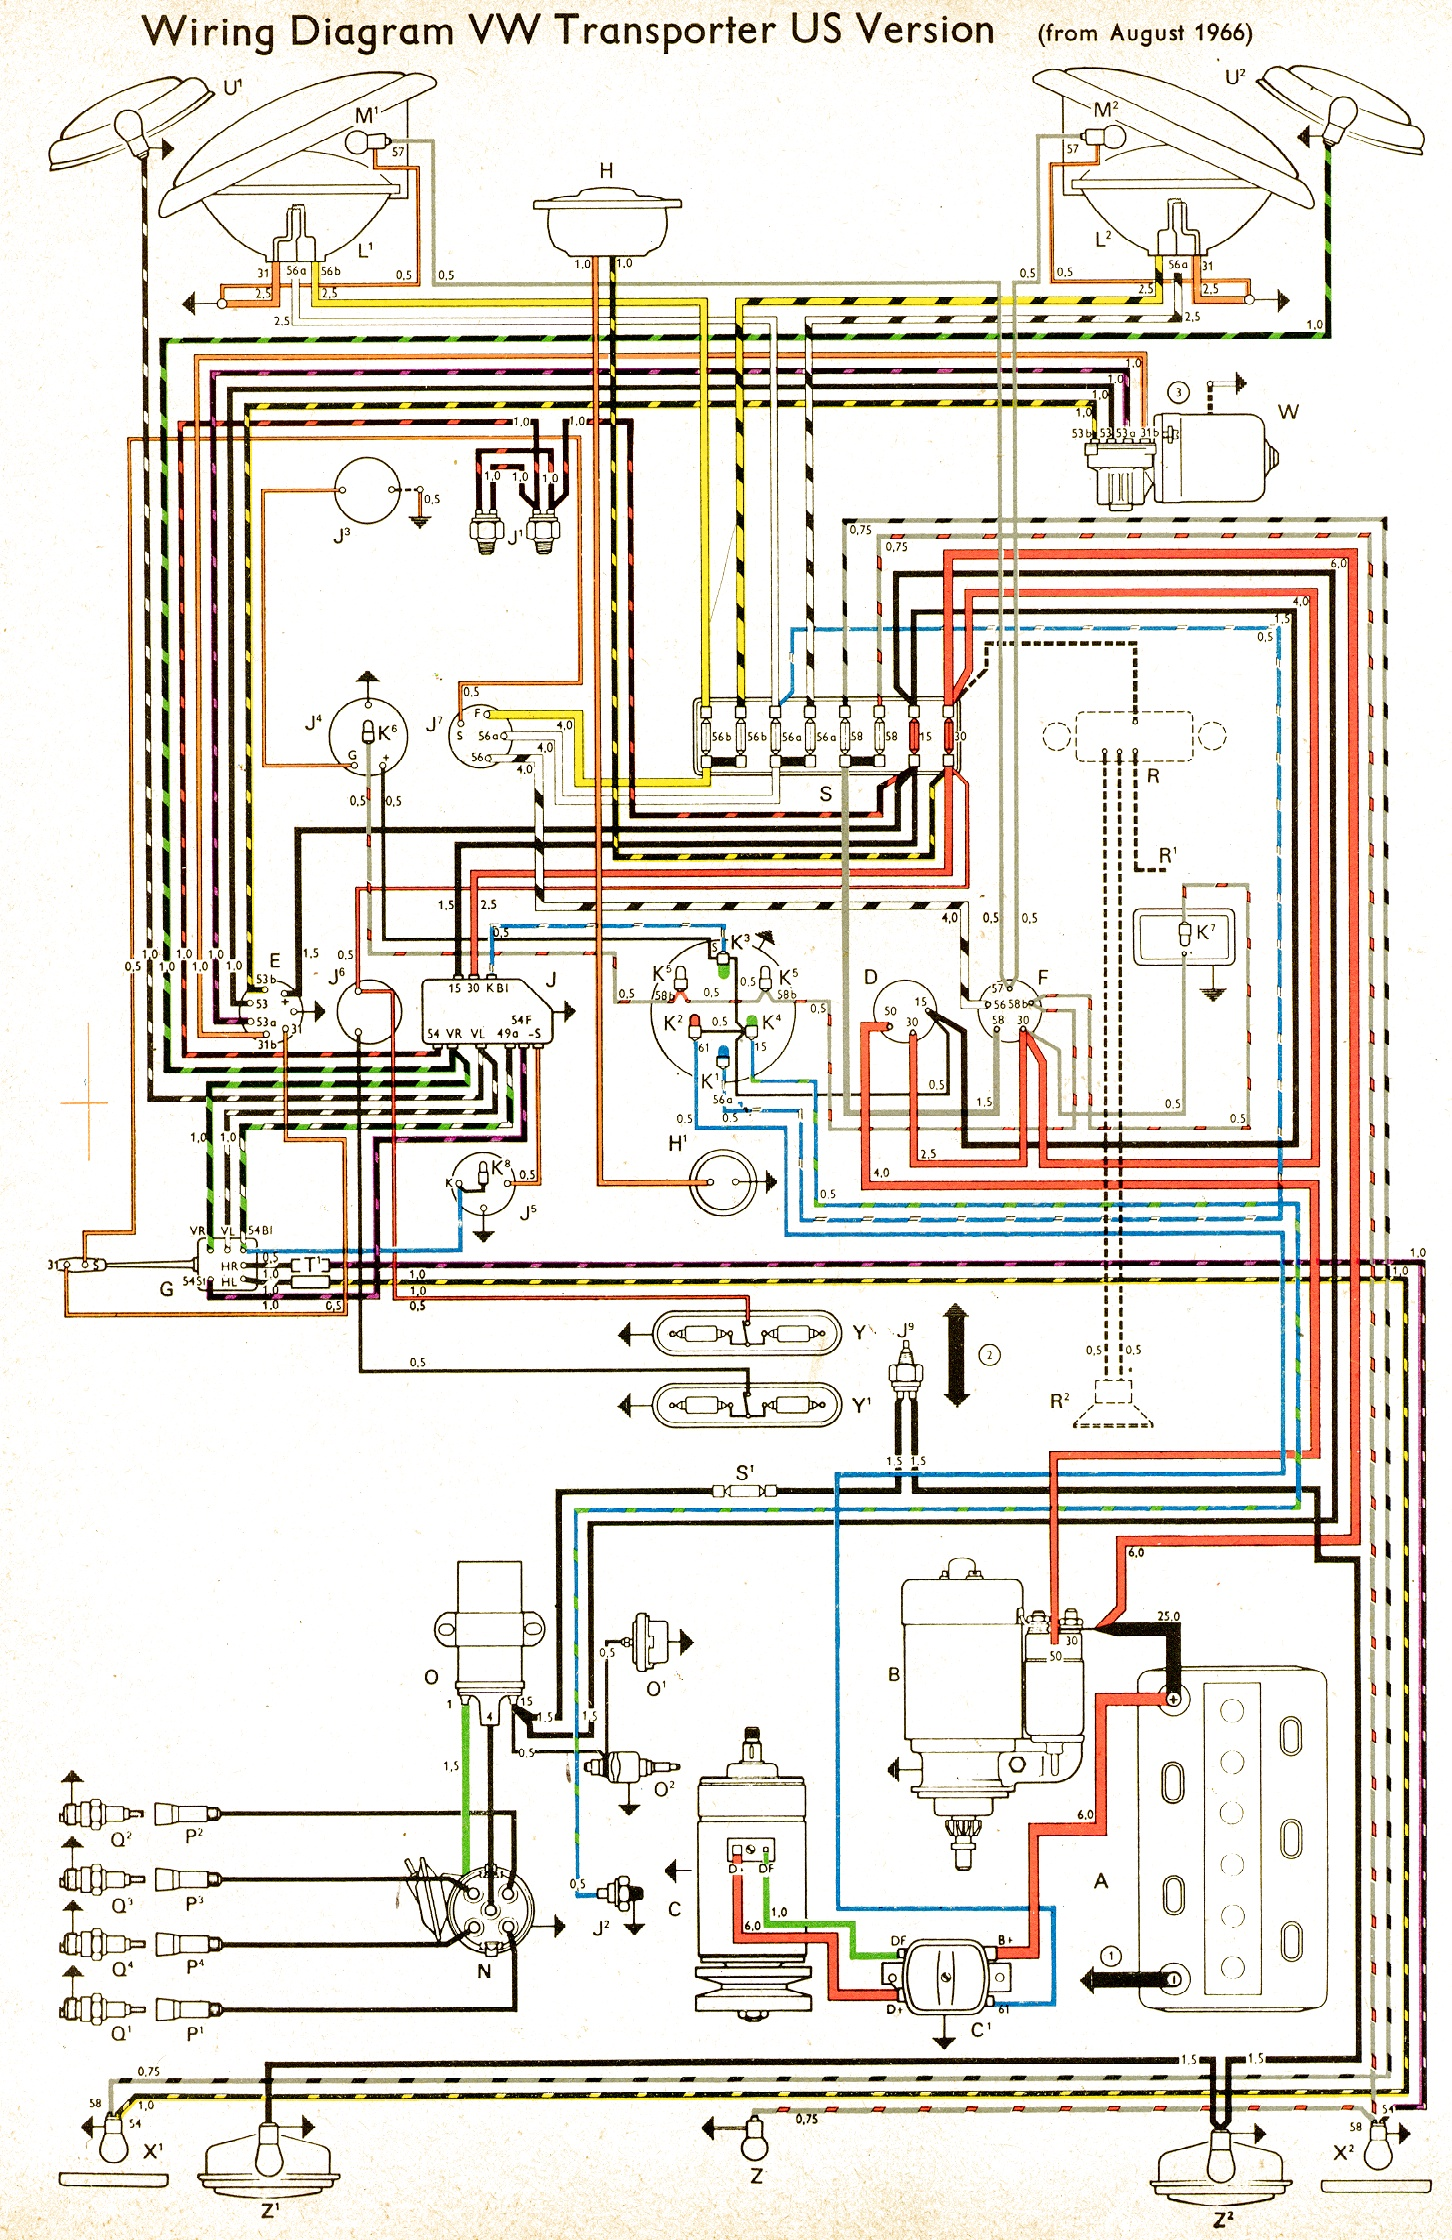 bus 66 usa wiring diagrams \u2022 j squared co  at mifinder.co